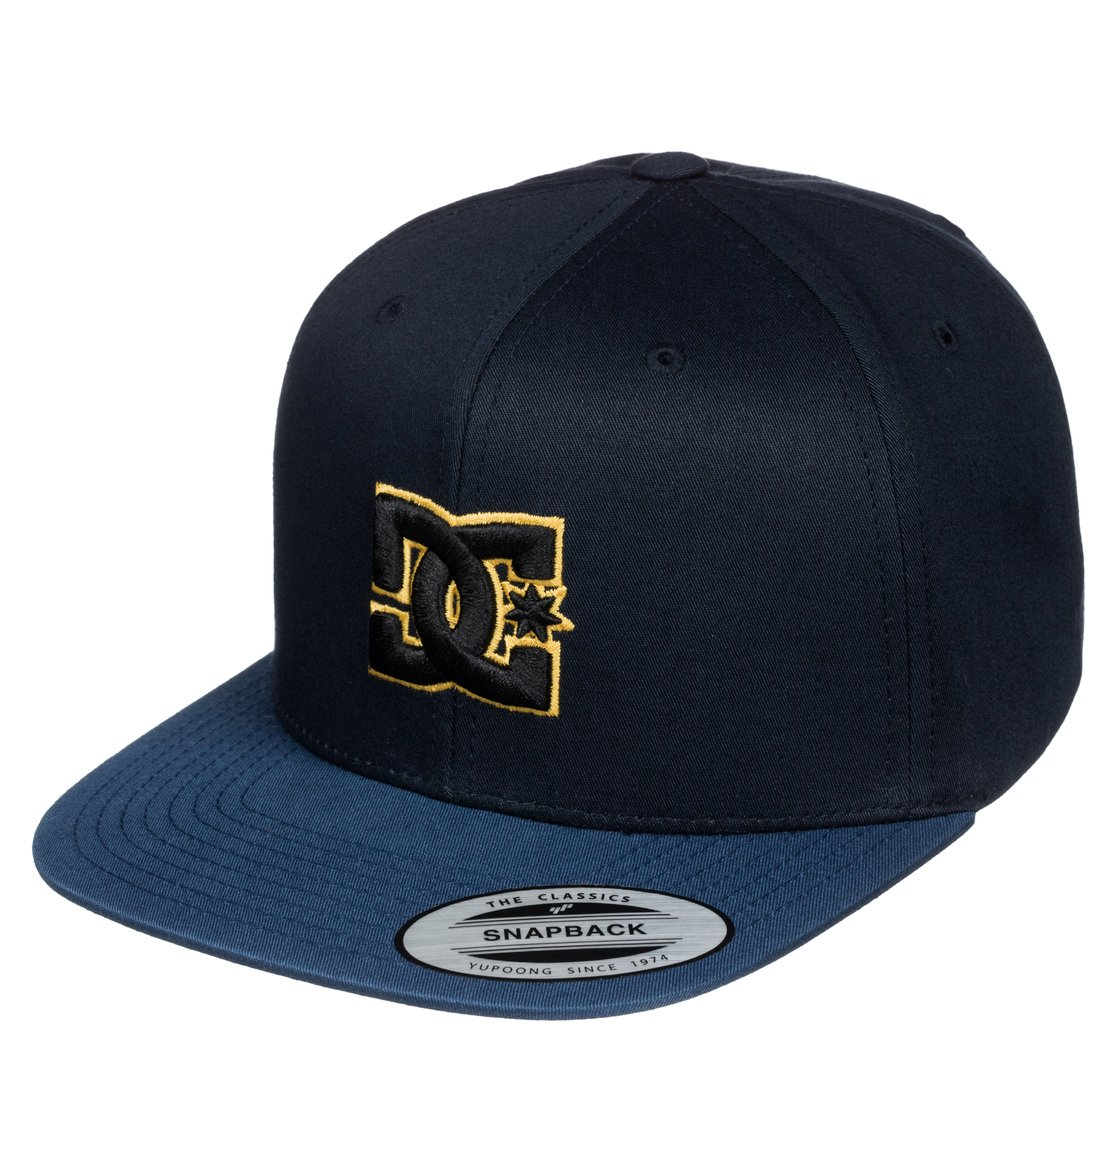 snappy casquette snapback 3613371250041 dc shoes. Black Bedroom Furniture Sets. Home Design Ideas